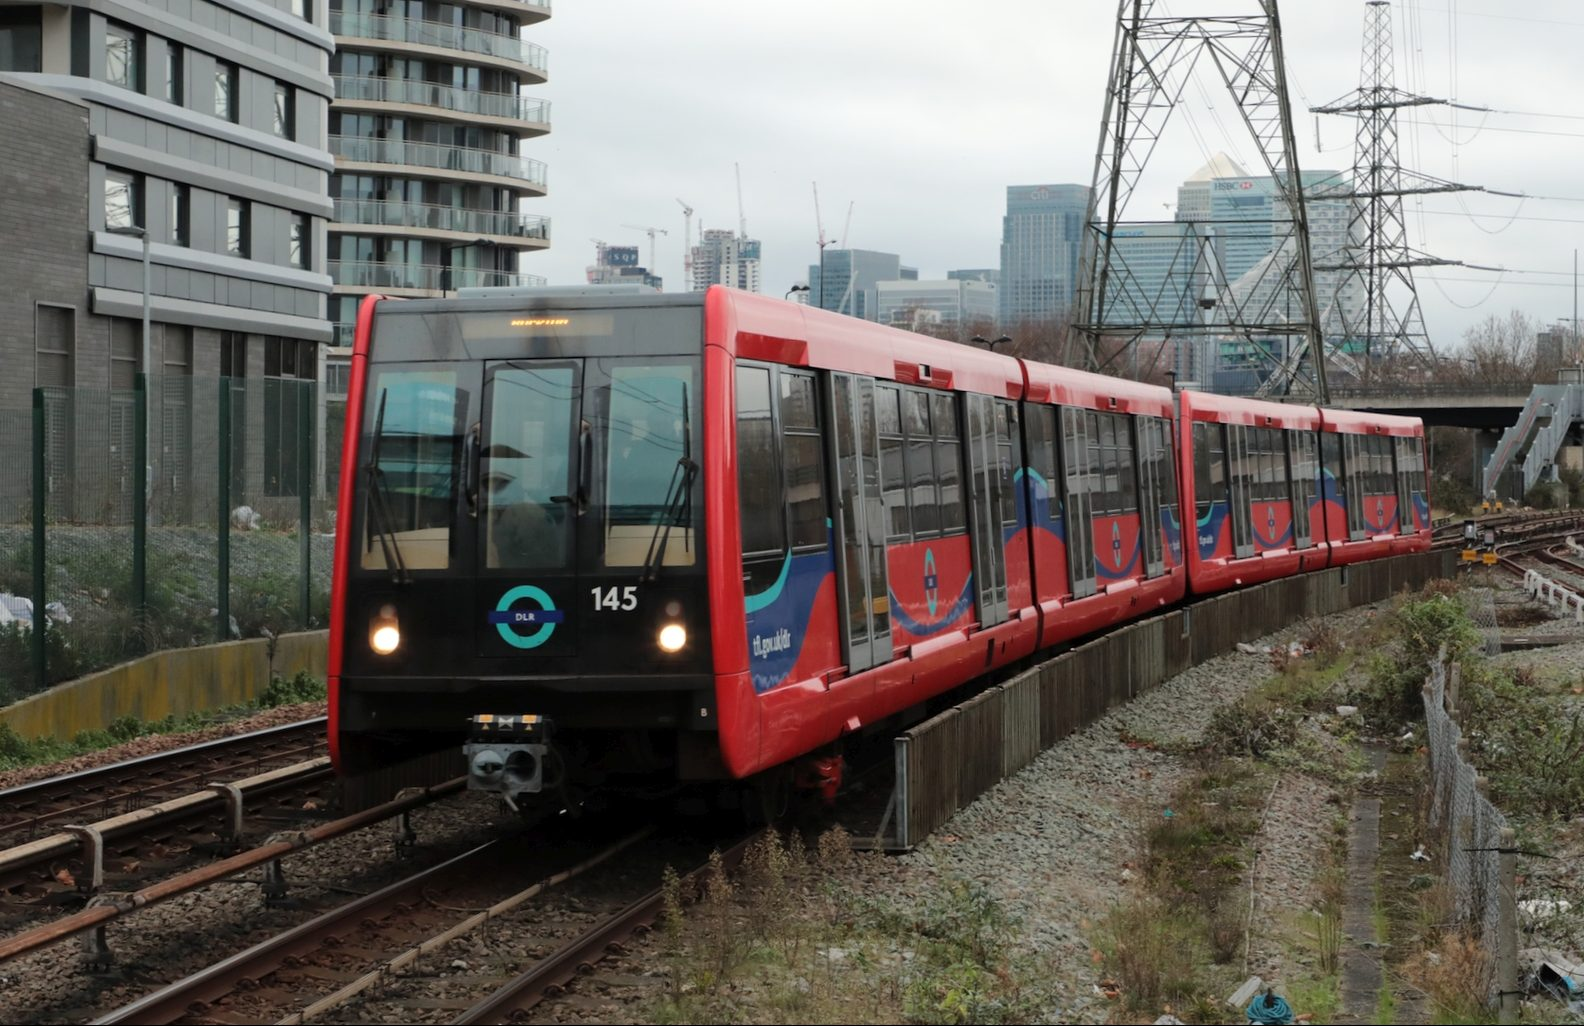 TfL lifts lid on possible Thamesmead DLR extension